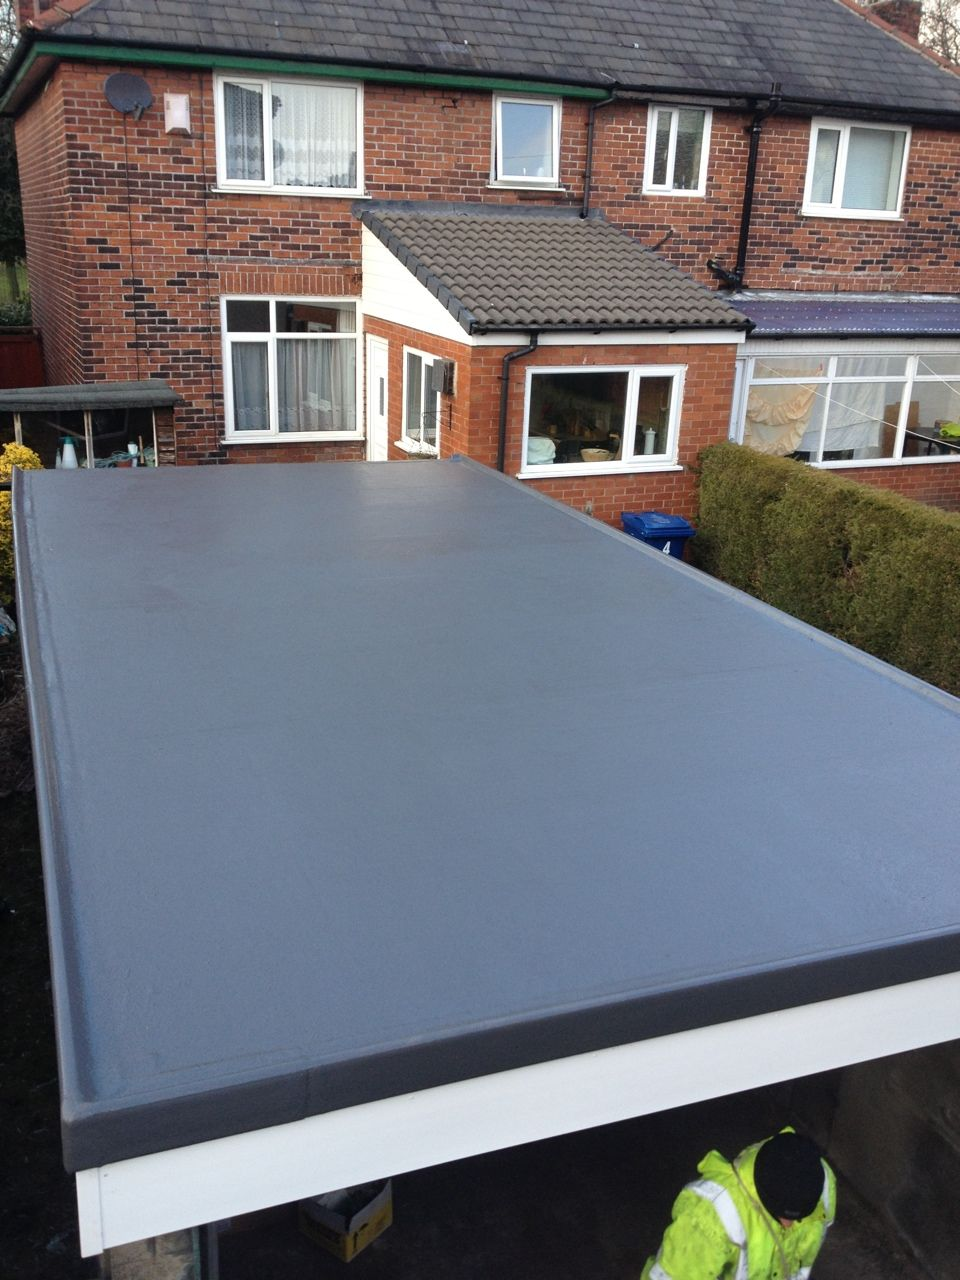 This Garage Roof In Bury Was Completely Transformed When We Installed A Grp Roofing System A Long Time Hardwearin Roofing Options Flat Roof Design Garage Roof